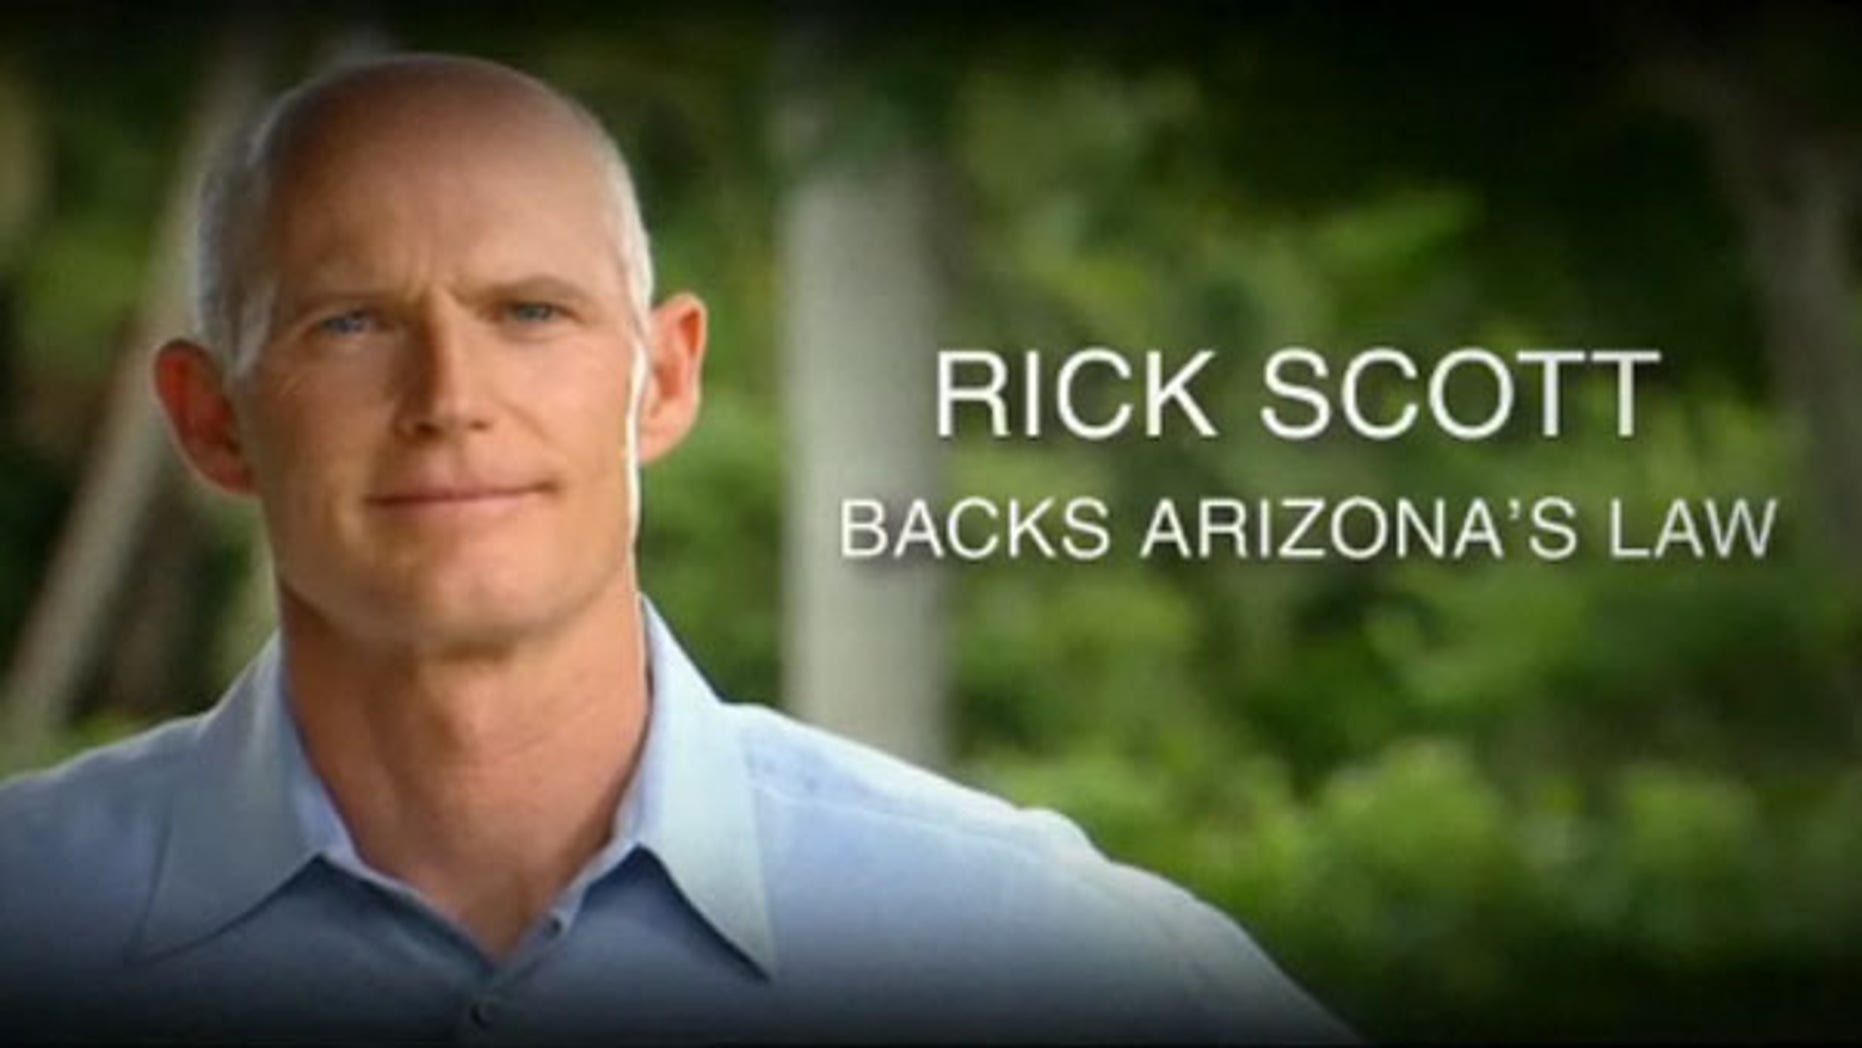 Florida Republican gubernatorial candidate Rick Scott is shown here in a campaign ad. (Rick Scott for Governor)